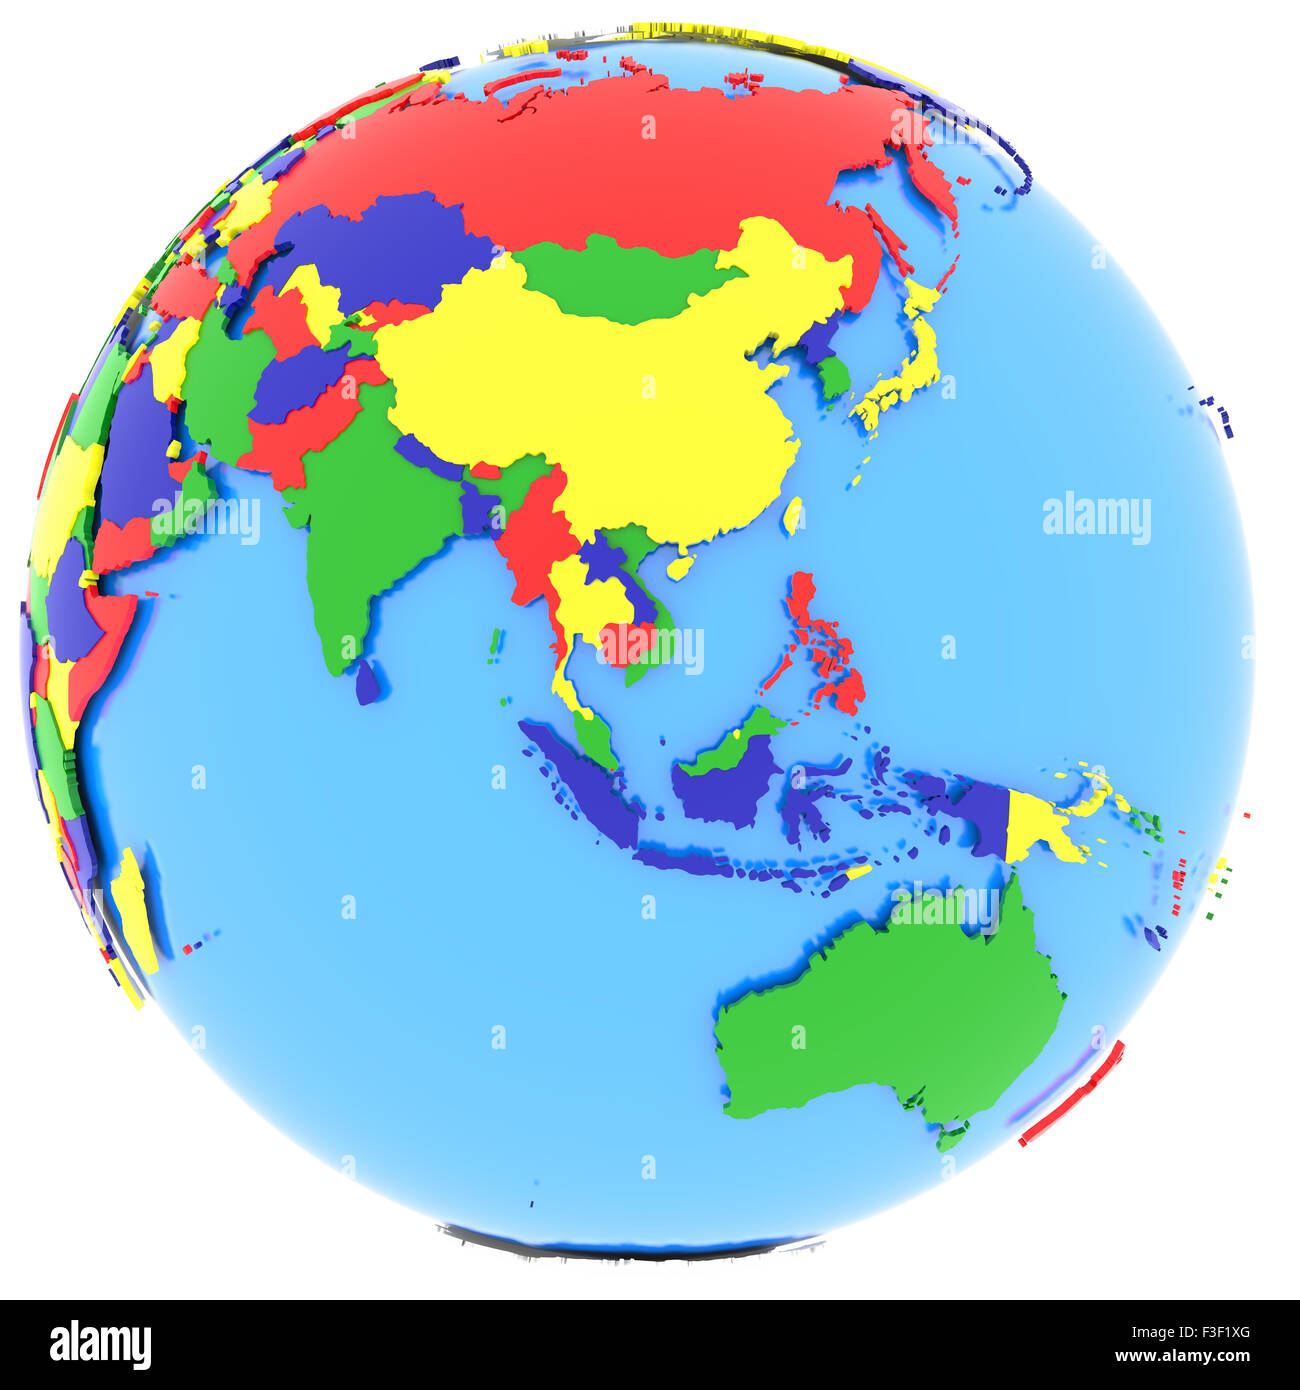 Political Map Of Southeast Asia.Political Map Of Southeast Asia With Countries In Four Colours Stock